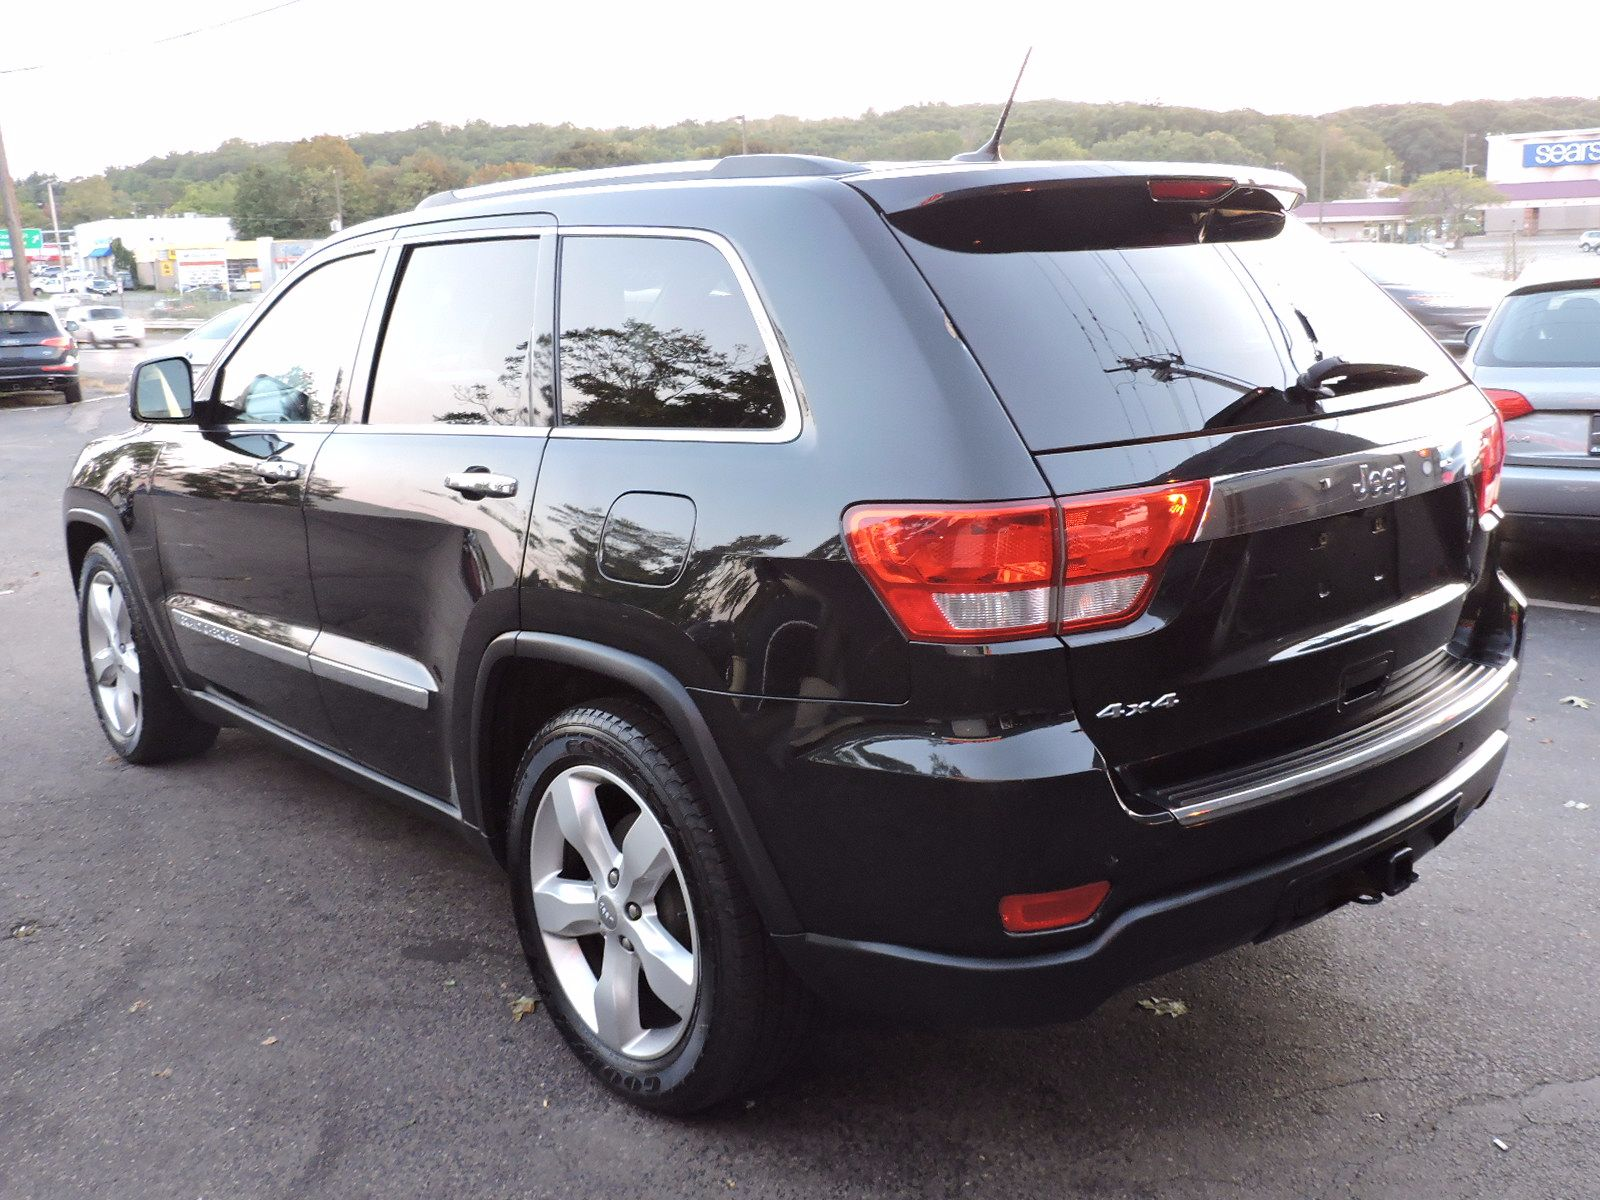 2011 Jeep Grand Cherokee - All Wheel Drive - Overland Edition